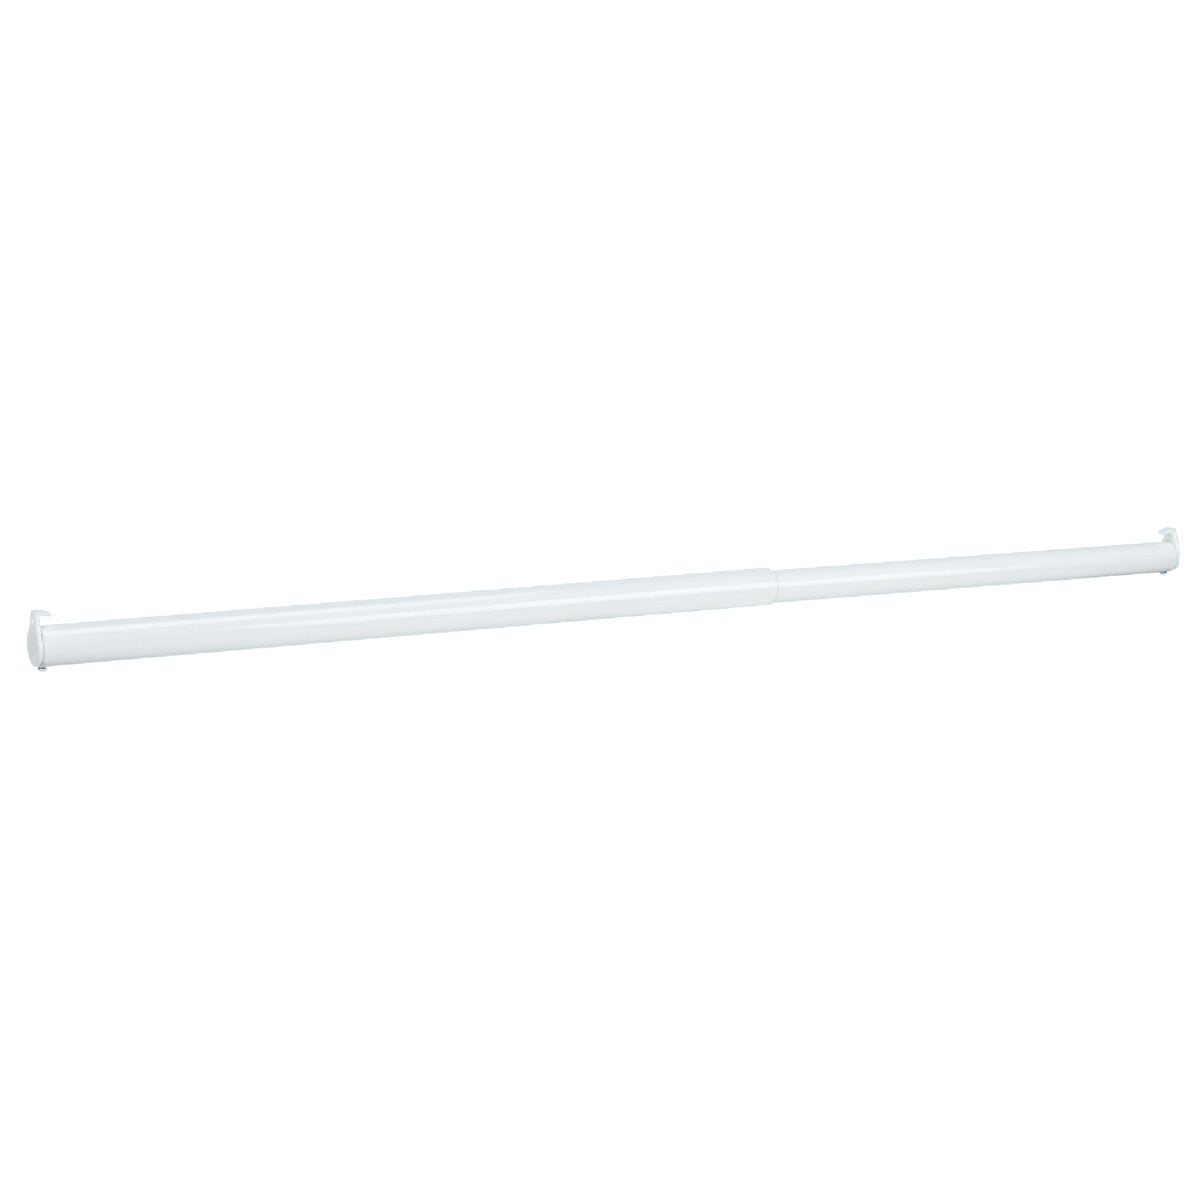 ADJUSTABLE CLOSET ROD - RP-0021-30/48 by Knape & Vogt Mfg Co